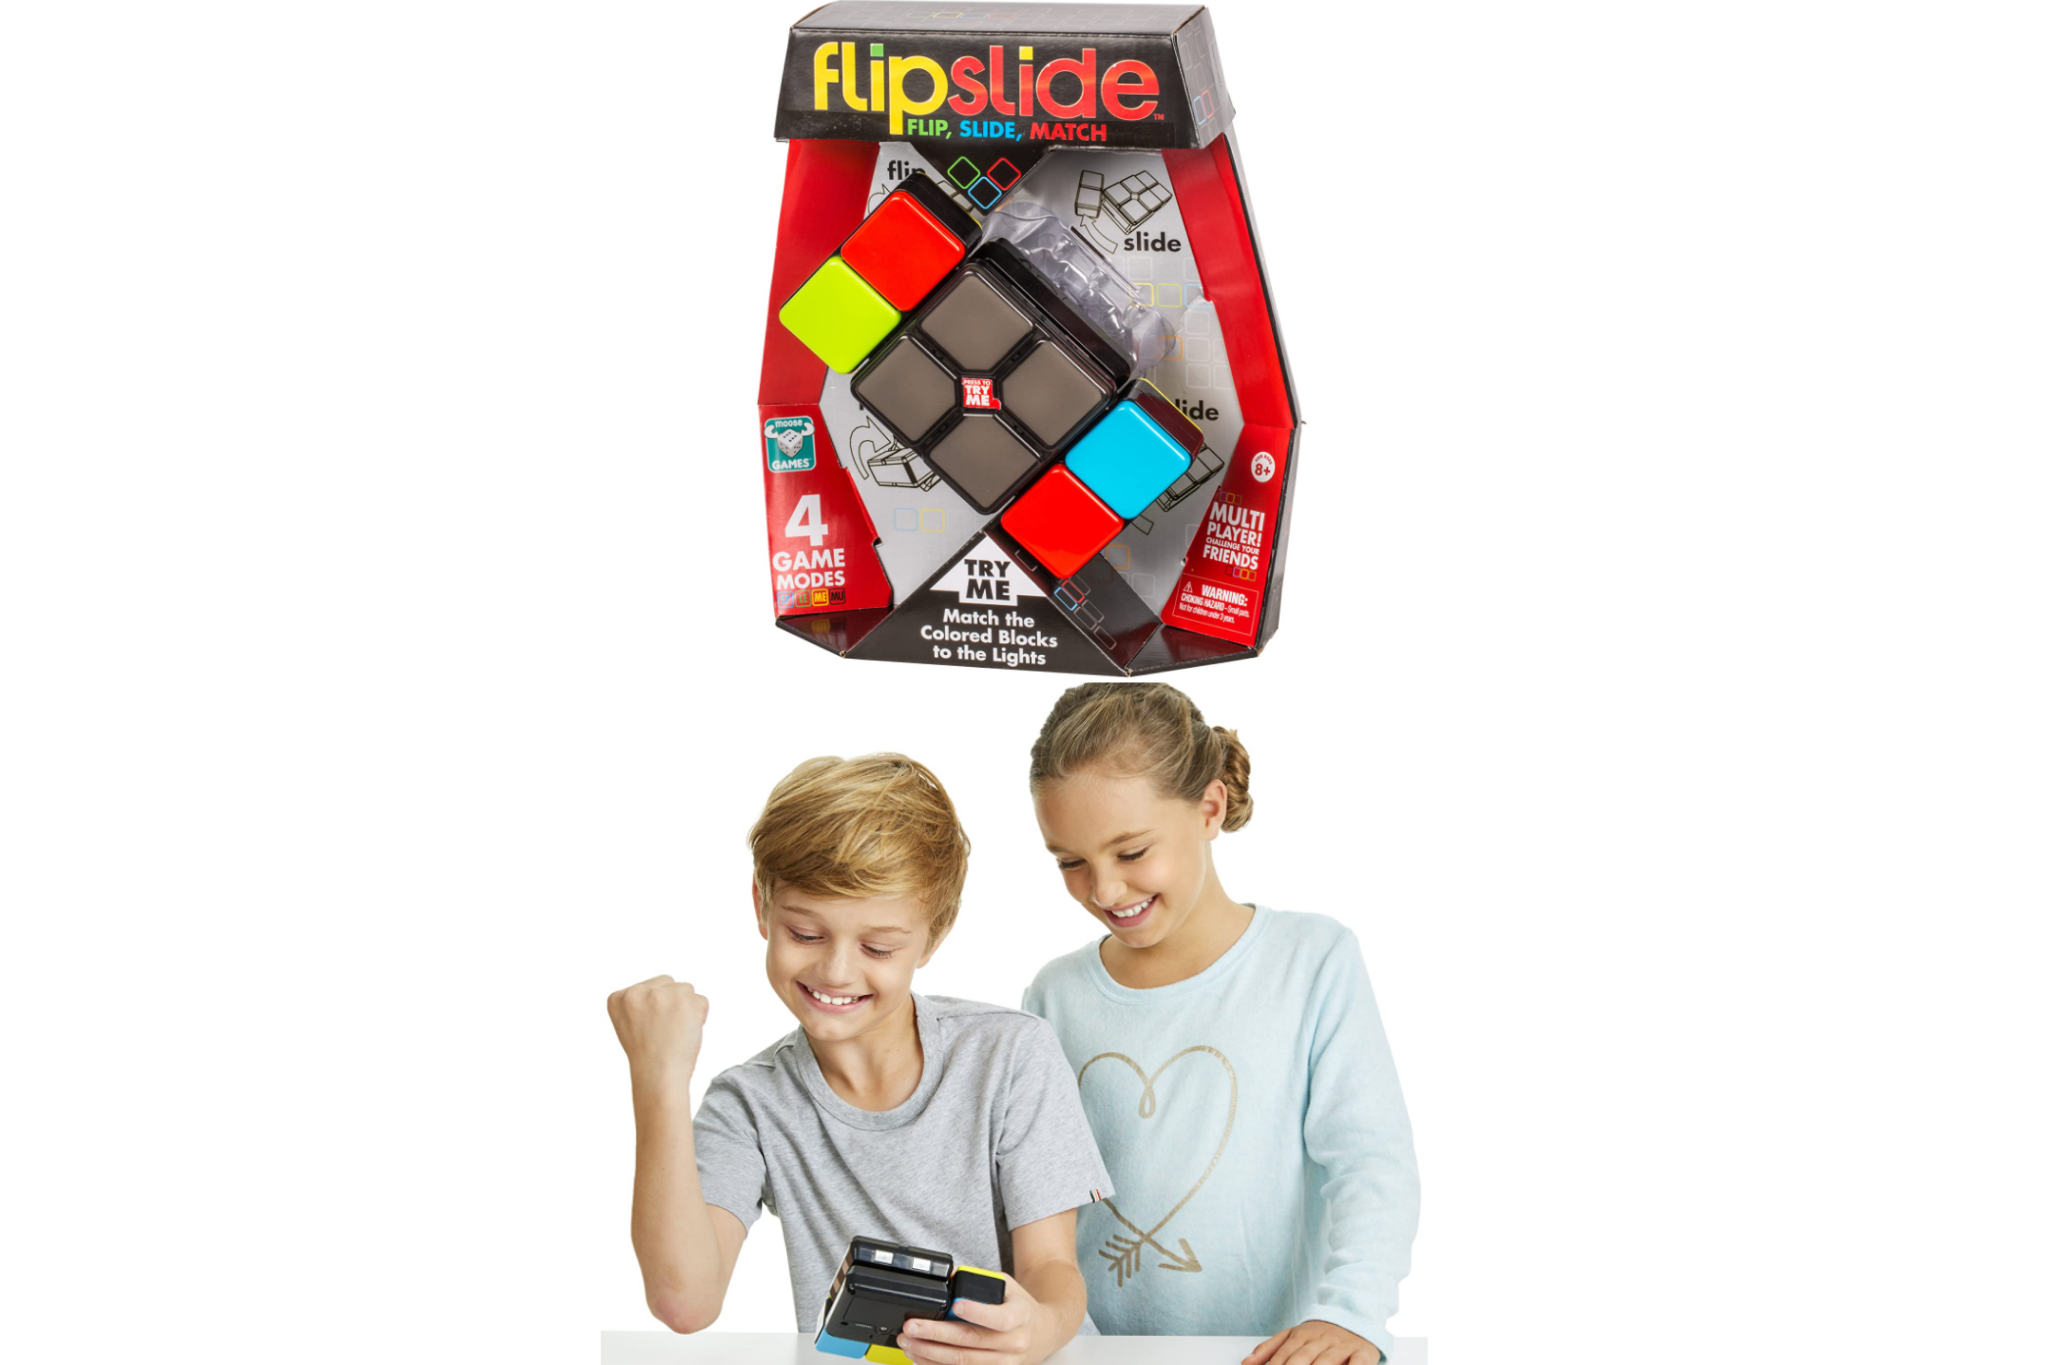 Cool games for 11 year olds